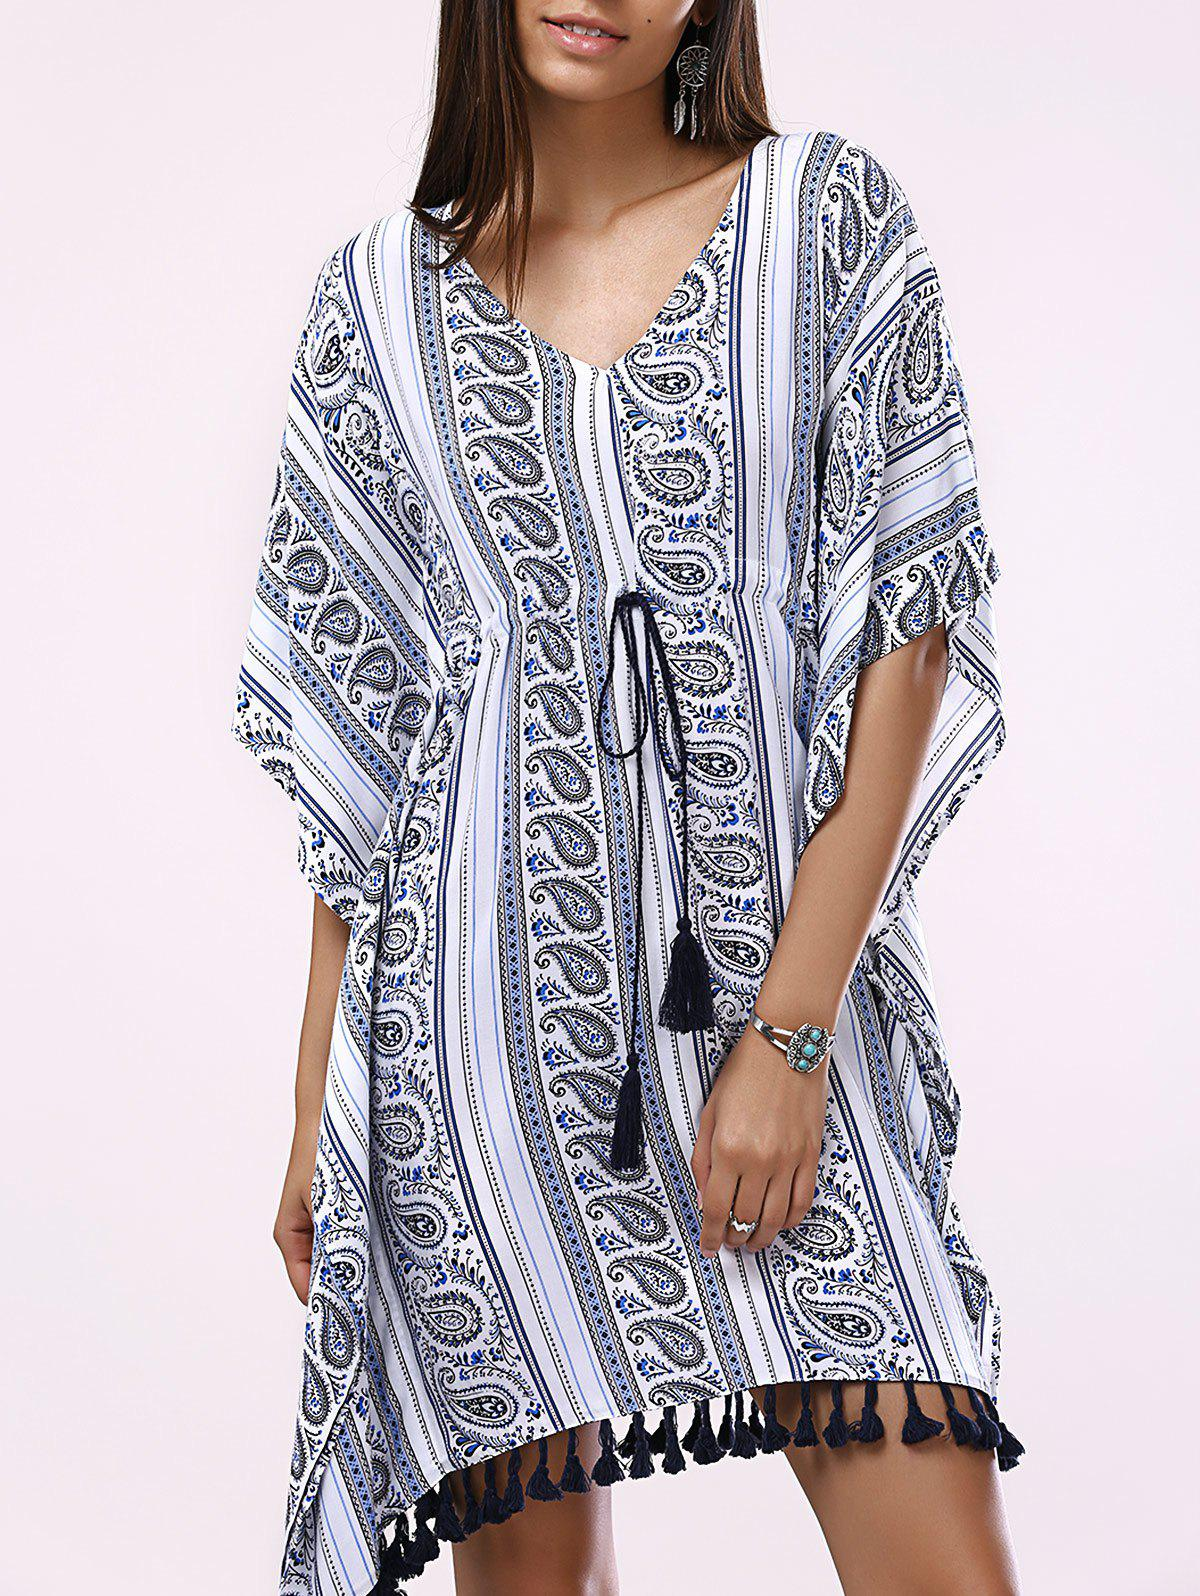 Fashionable Woman's Batwing V-Neck Drawstring Printing Dress - COLORMIX XL